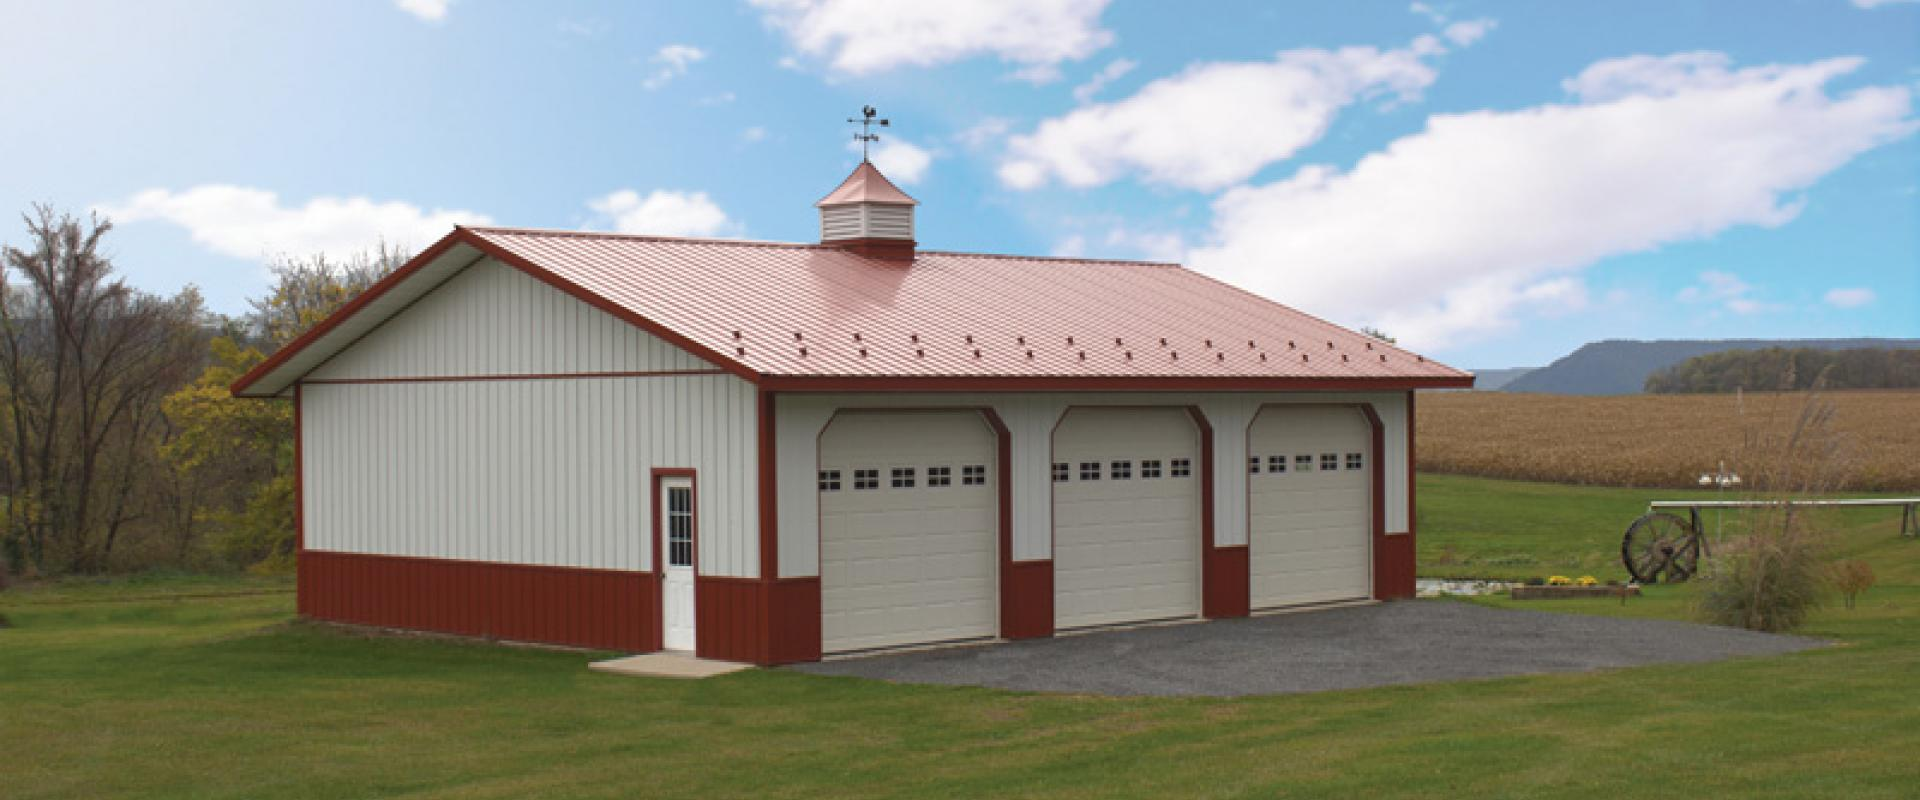 garages pole barns barn pinteres more building pin